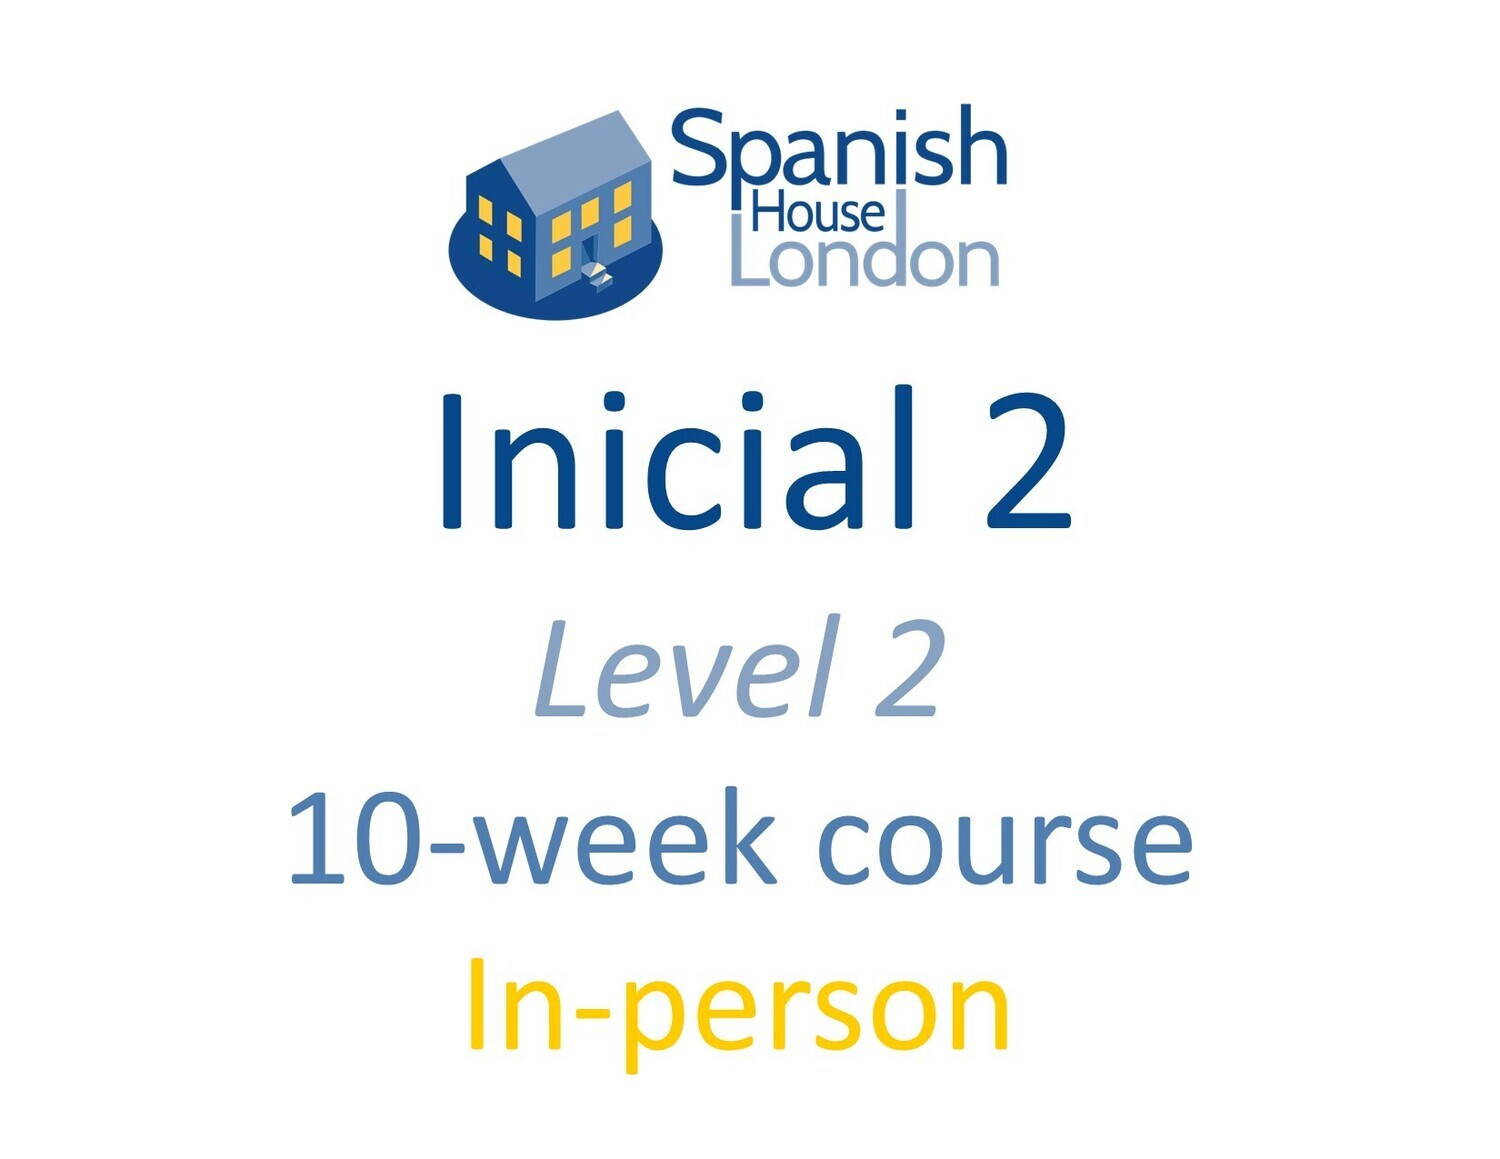 Inicial 2 Course starting on 17th November at 7.30pm in Euston / King's Cross